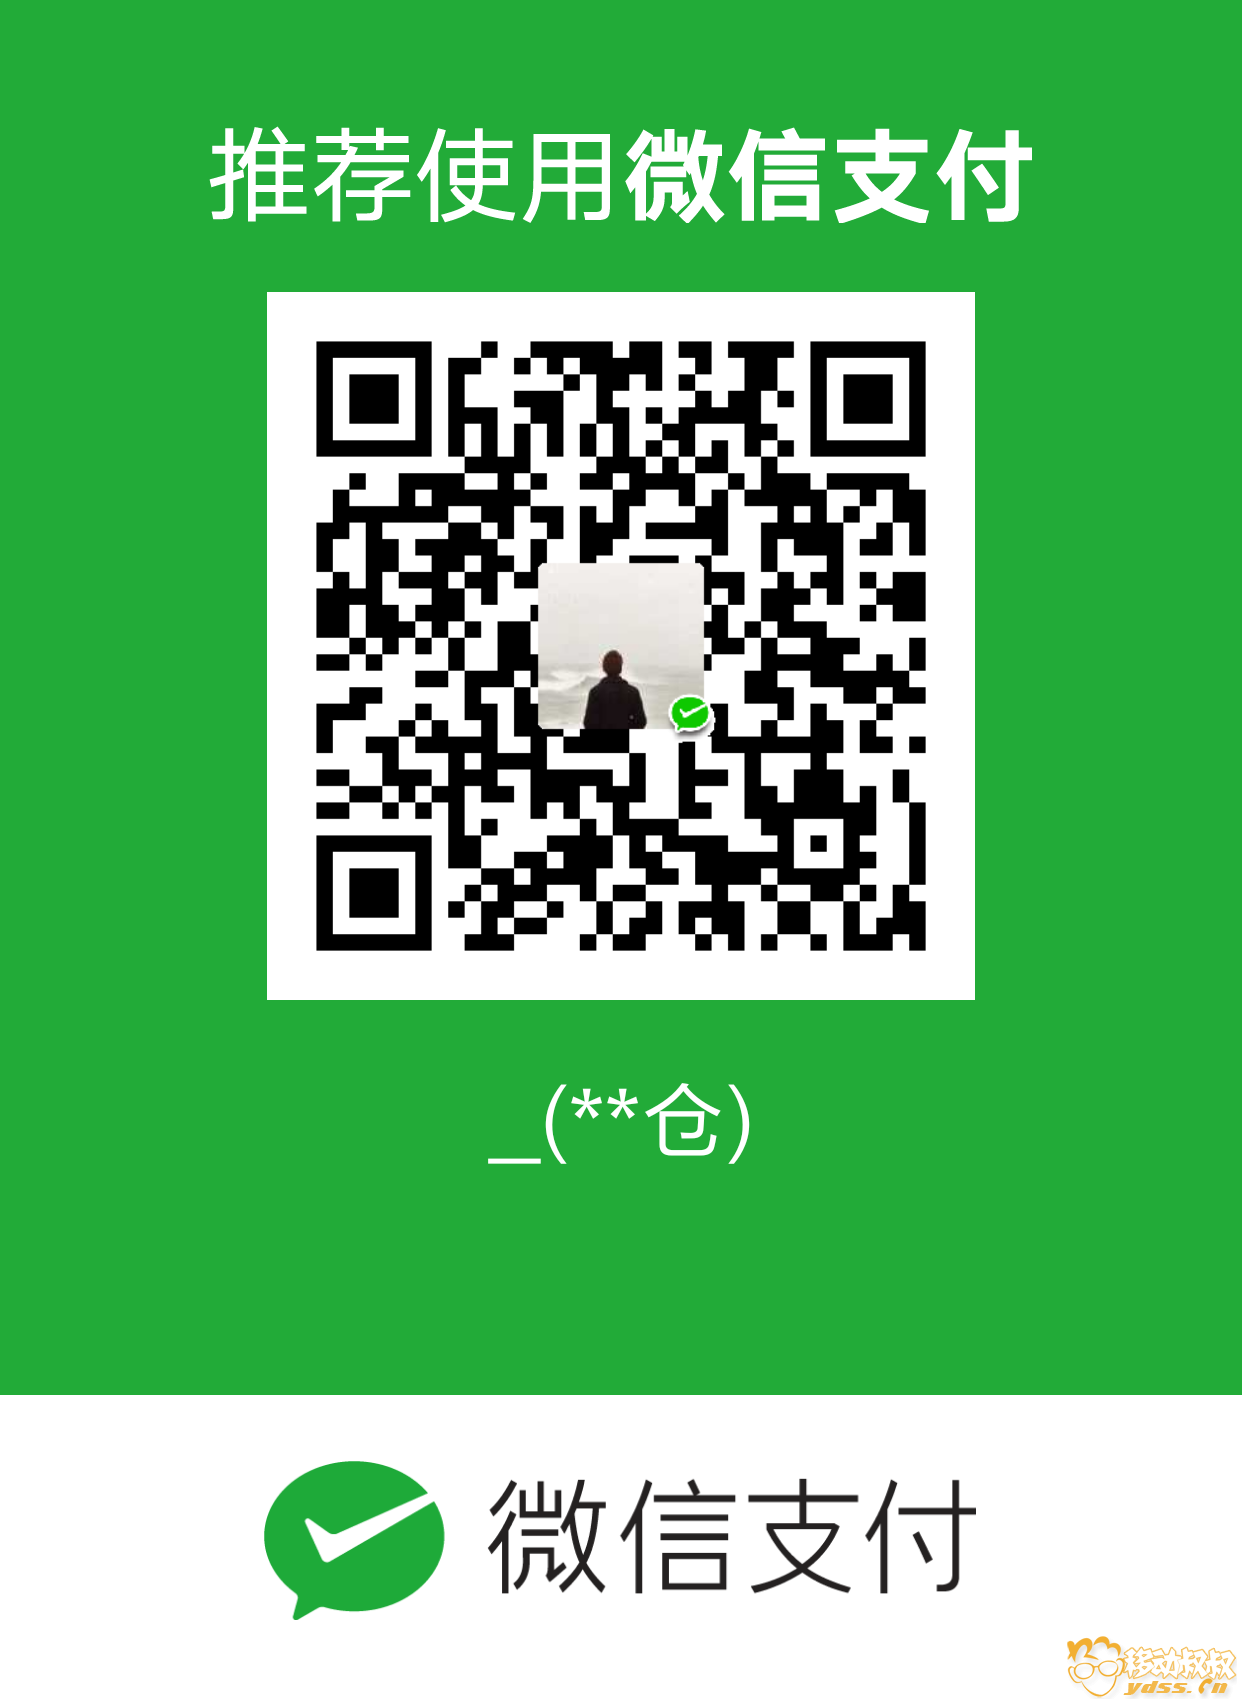 mm_facetoface_collect_qrcode_1531233222863.png